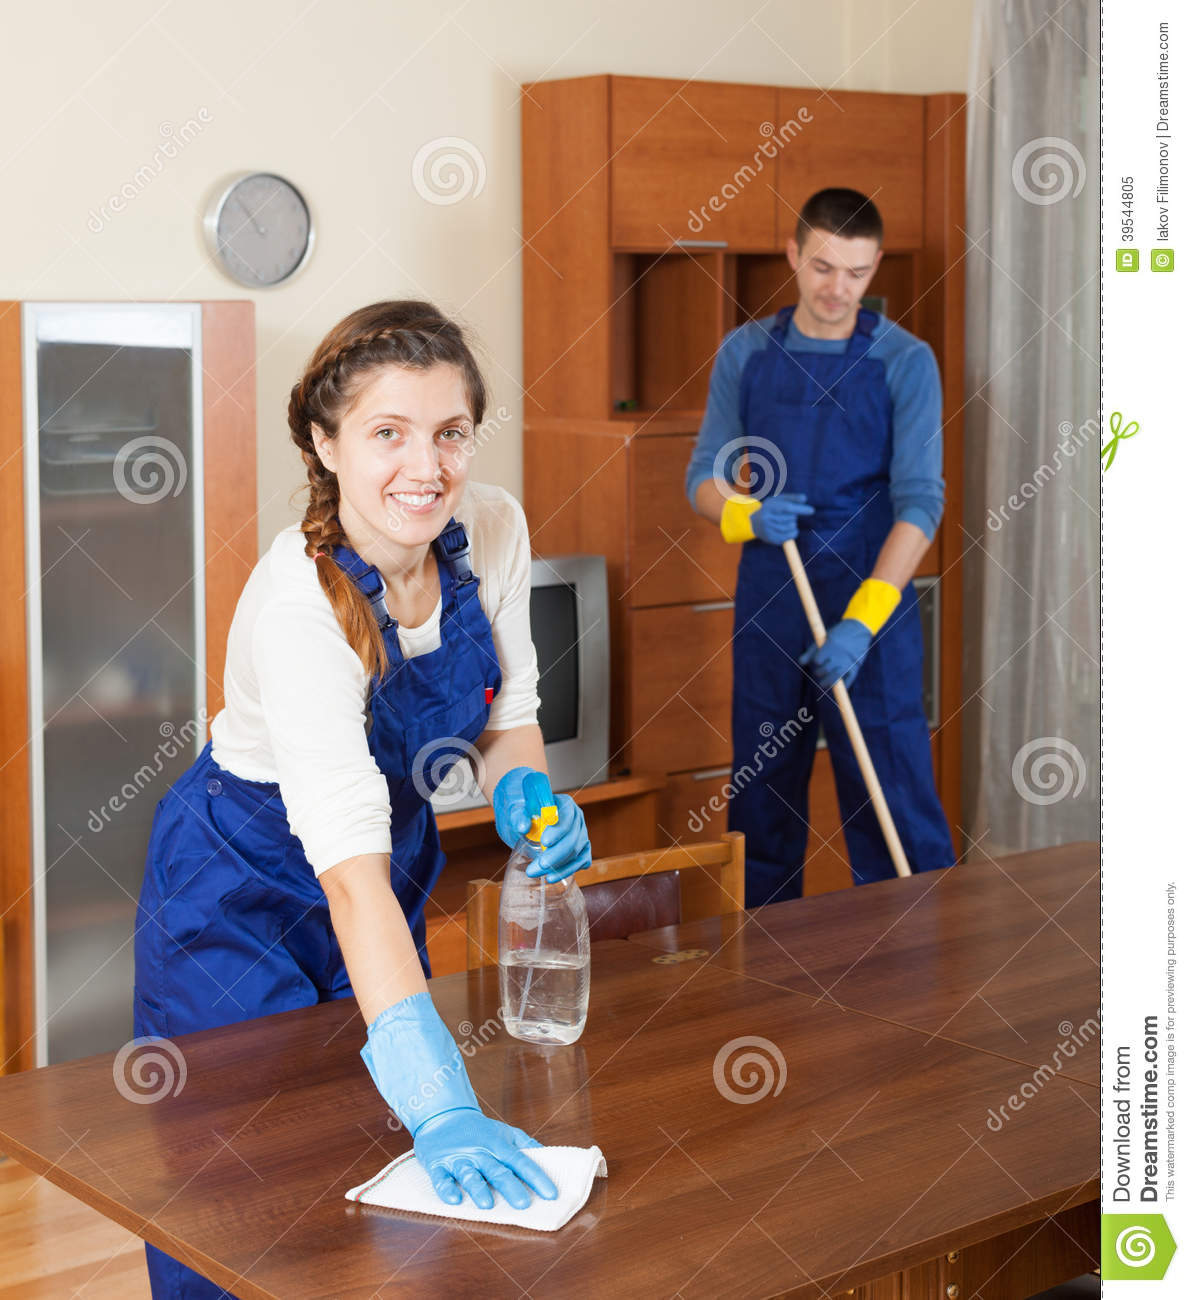 professional cleaners in uniform stock image